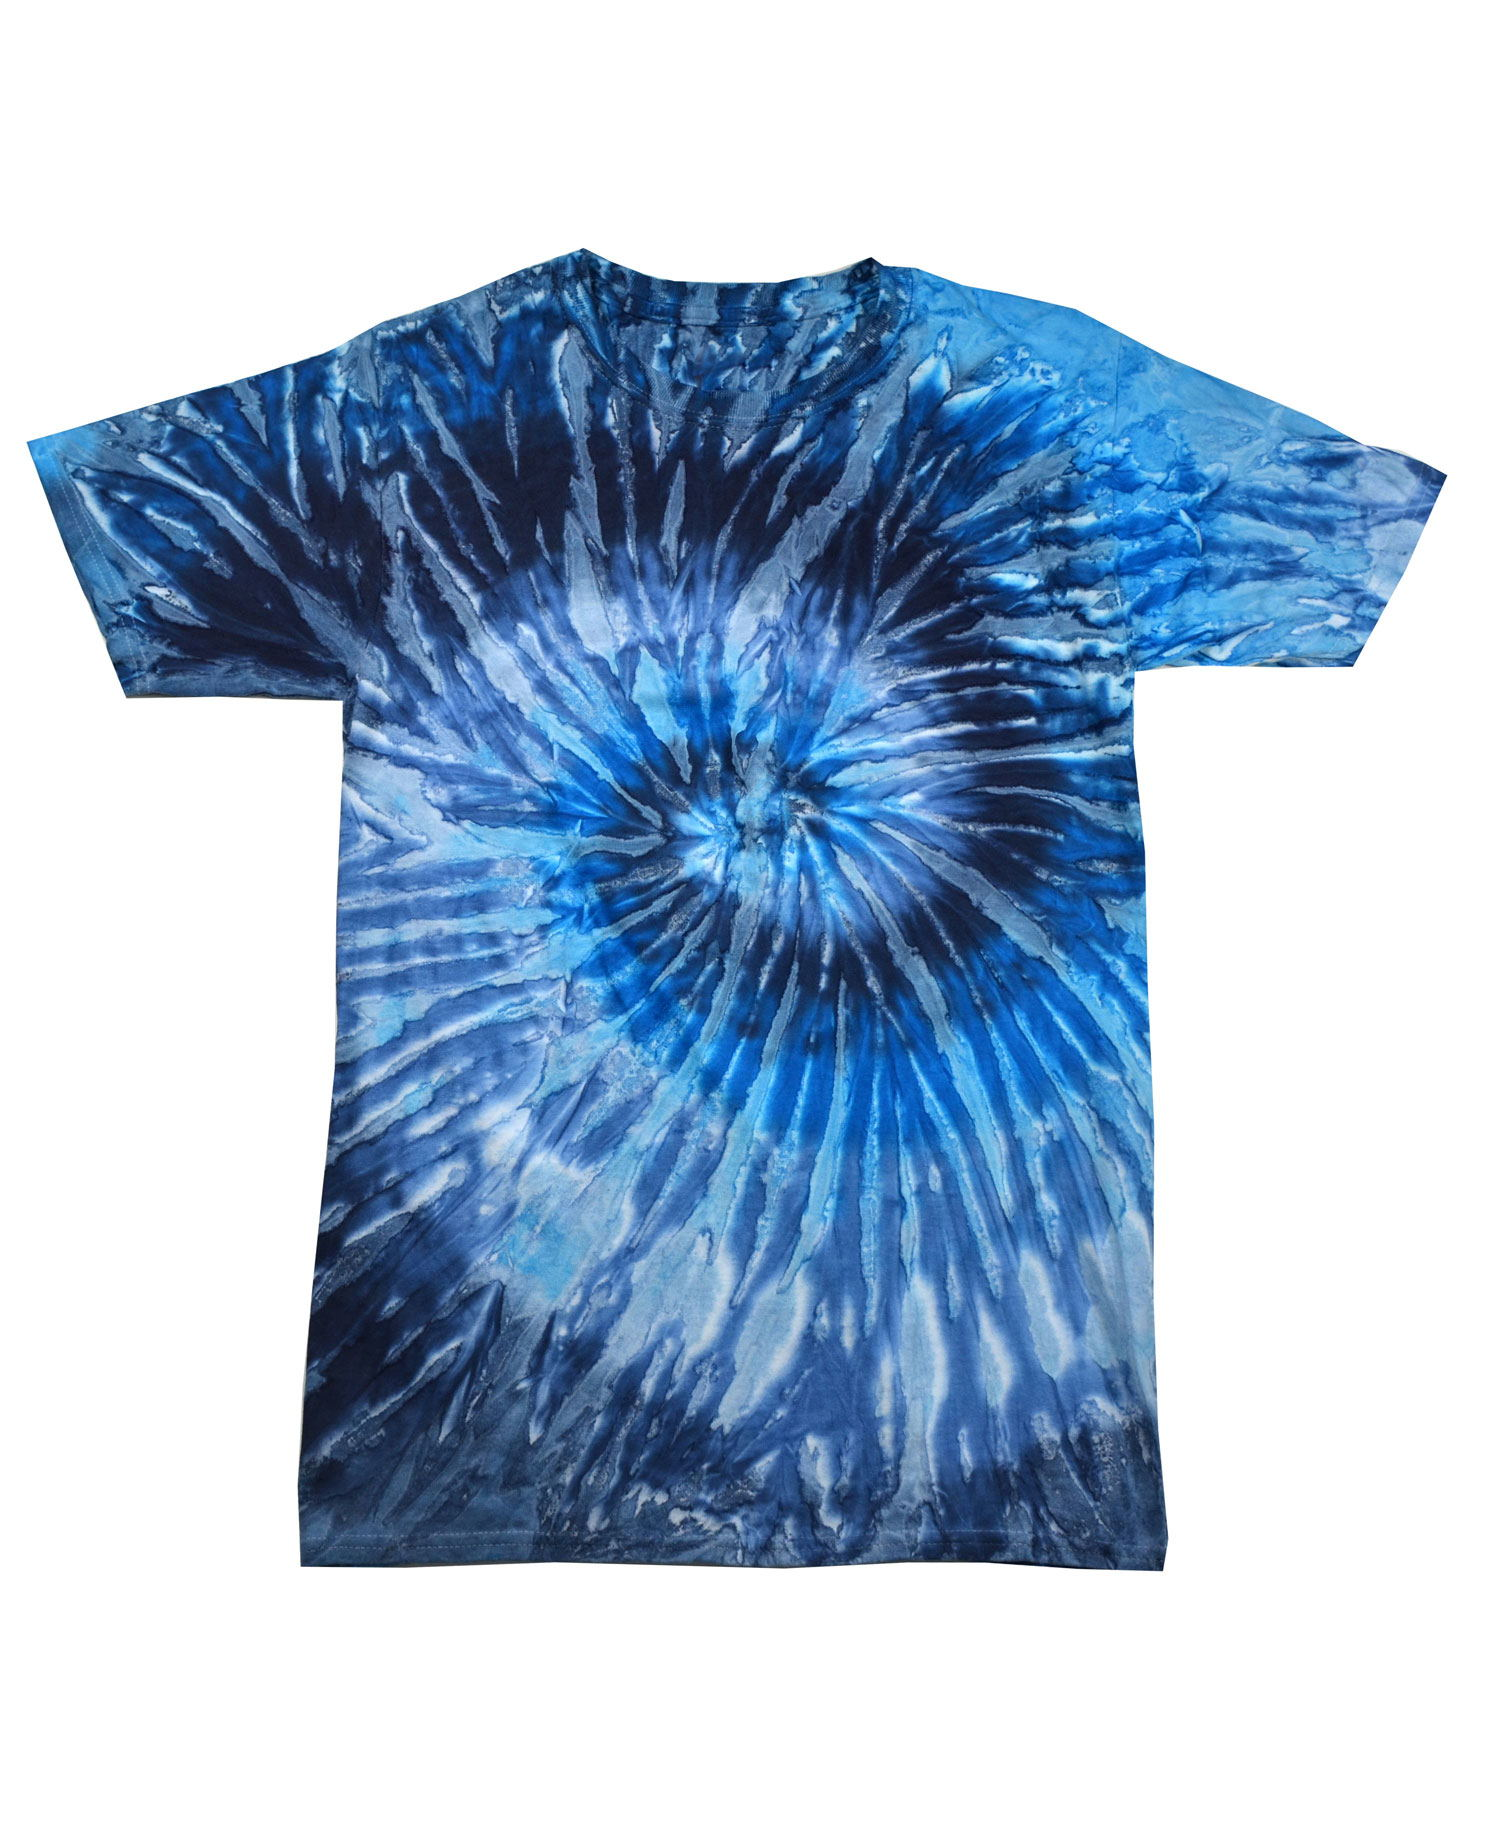 Colortone - T916P Youth Evening Sky Tie Dye Tee